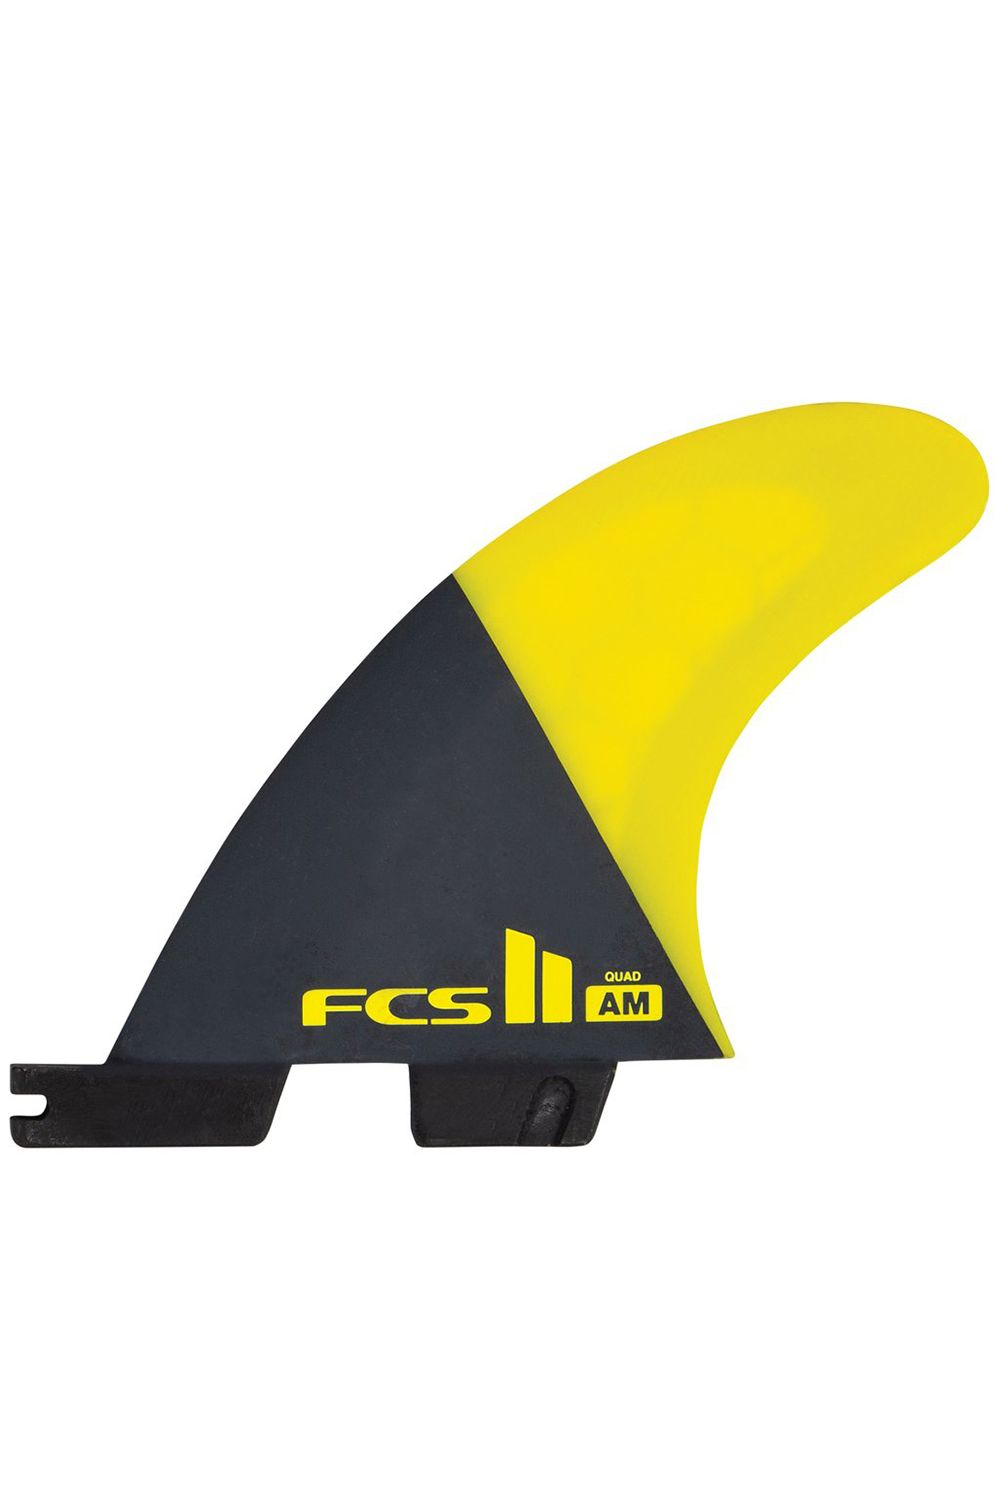 Quilha Fcs II AM PC LARGE YELLOW TRI-QUAD Tri Quad FCS II L